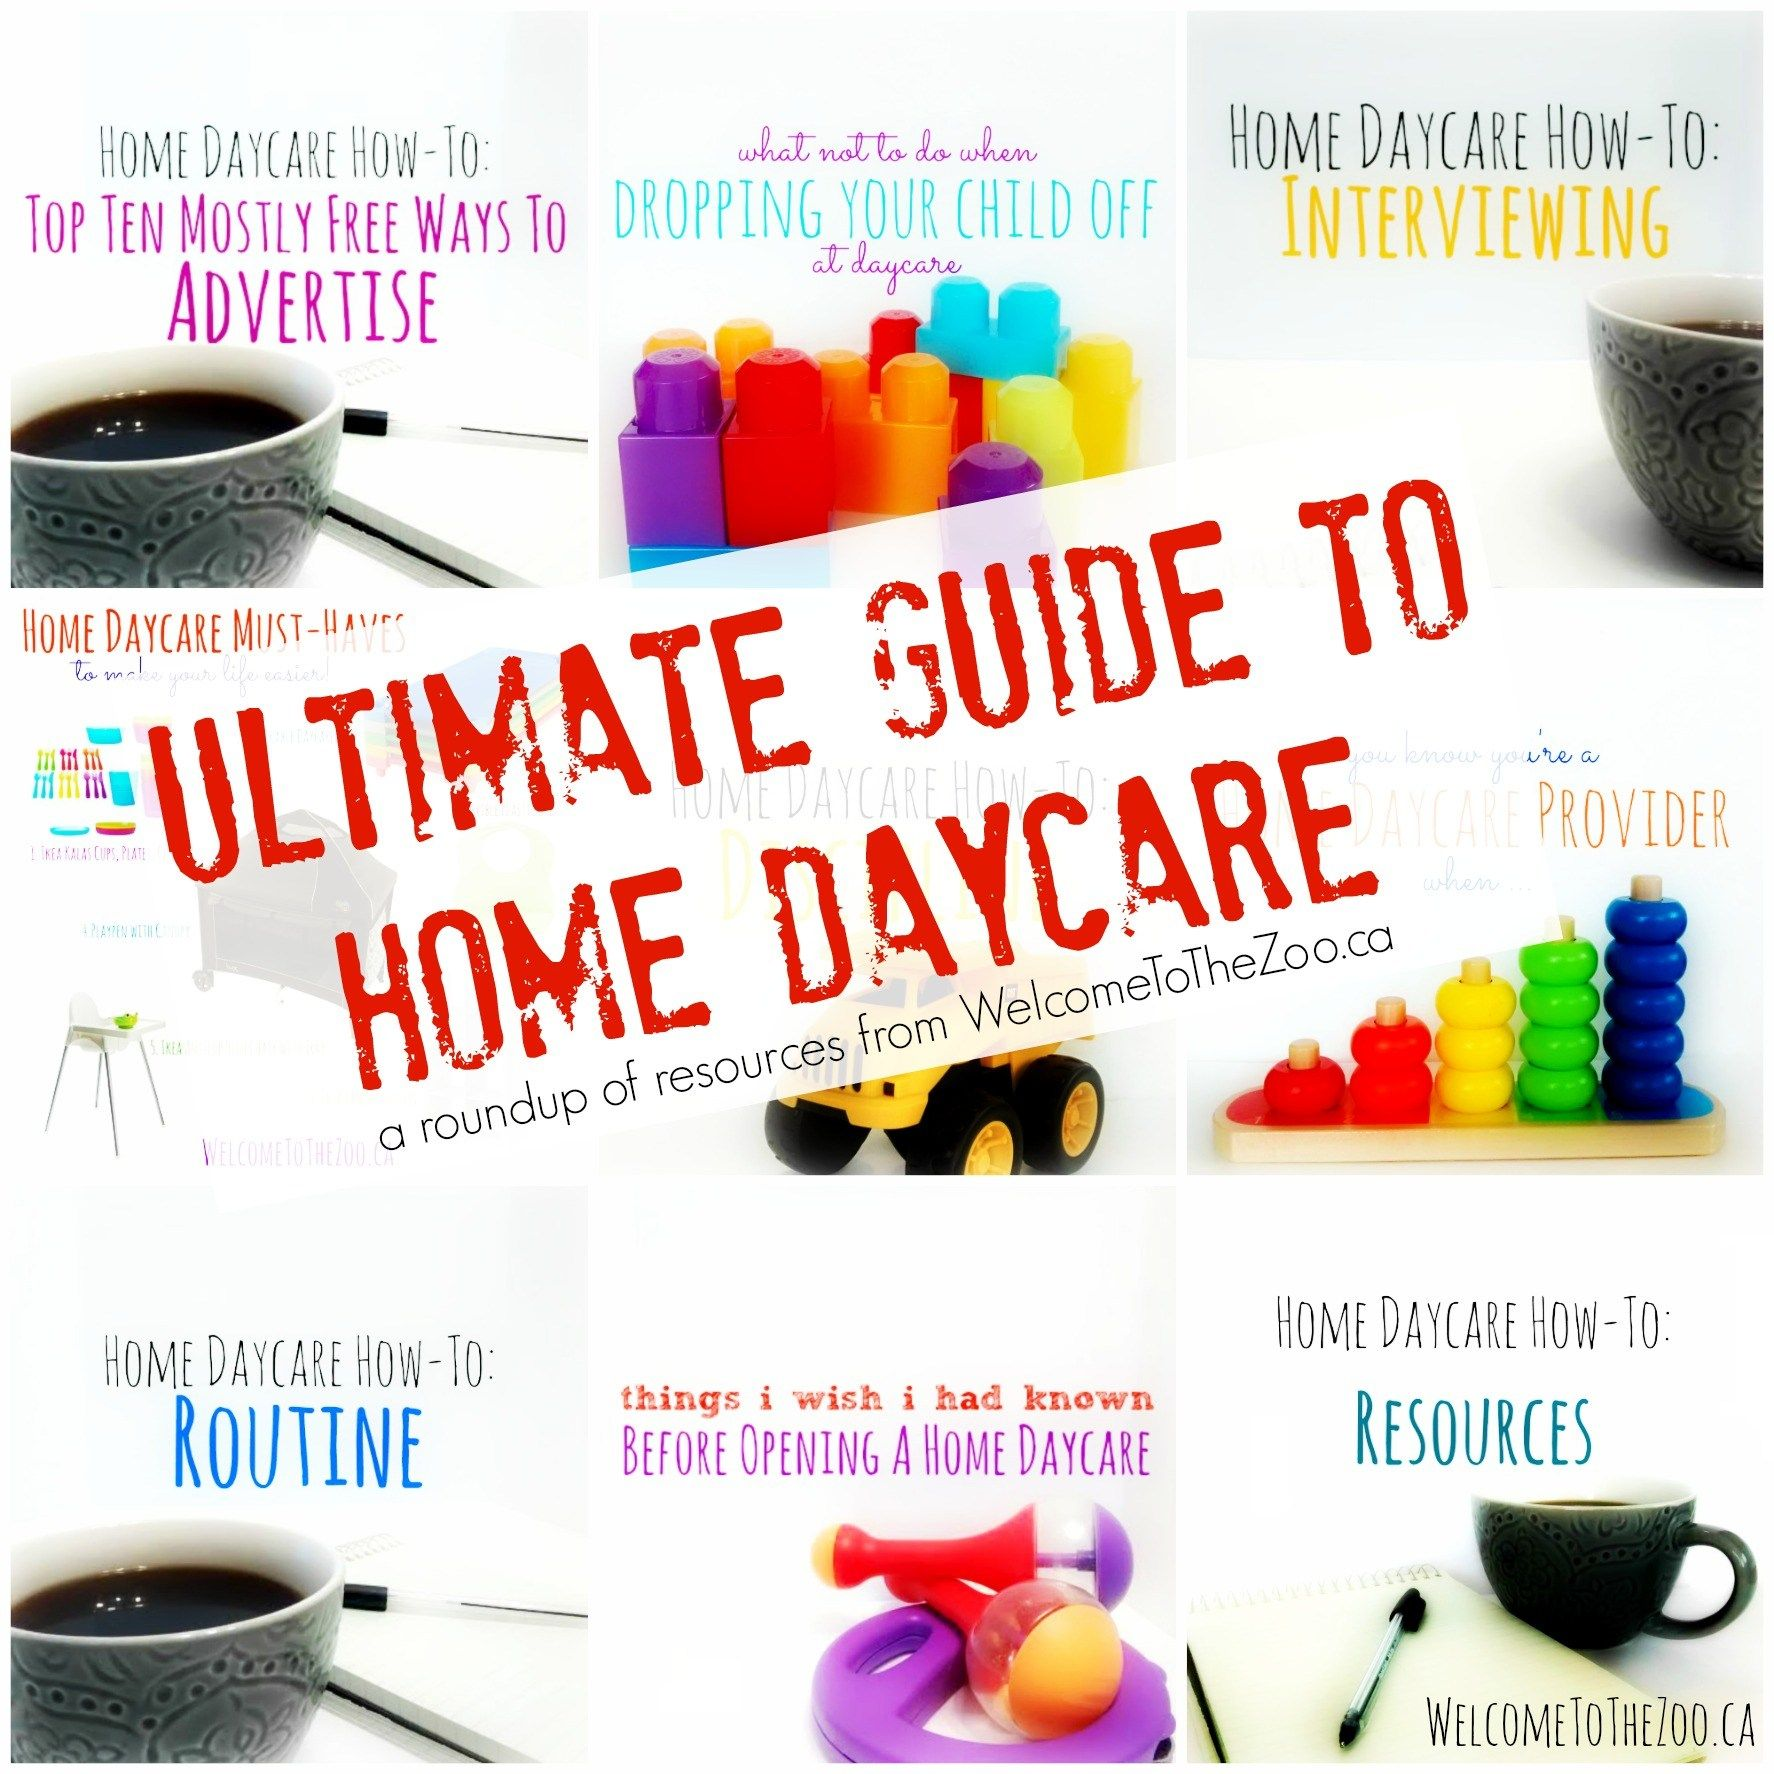 Running Your Own Inhome Daycare Is One Of The Best Ways To Make Money